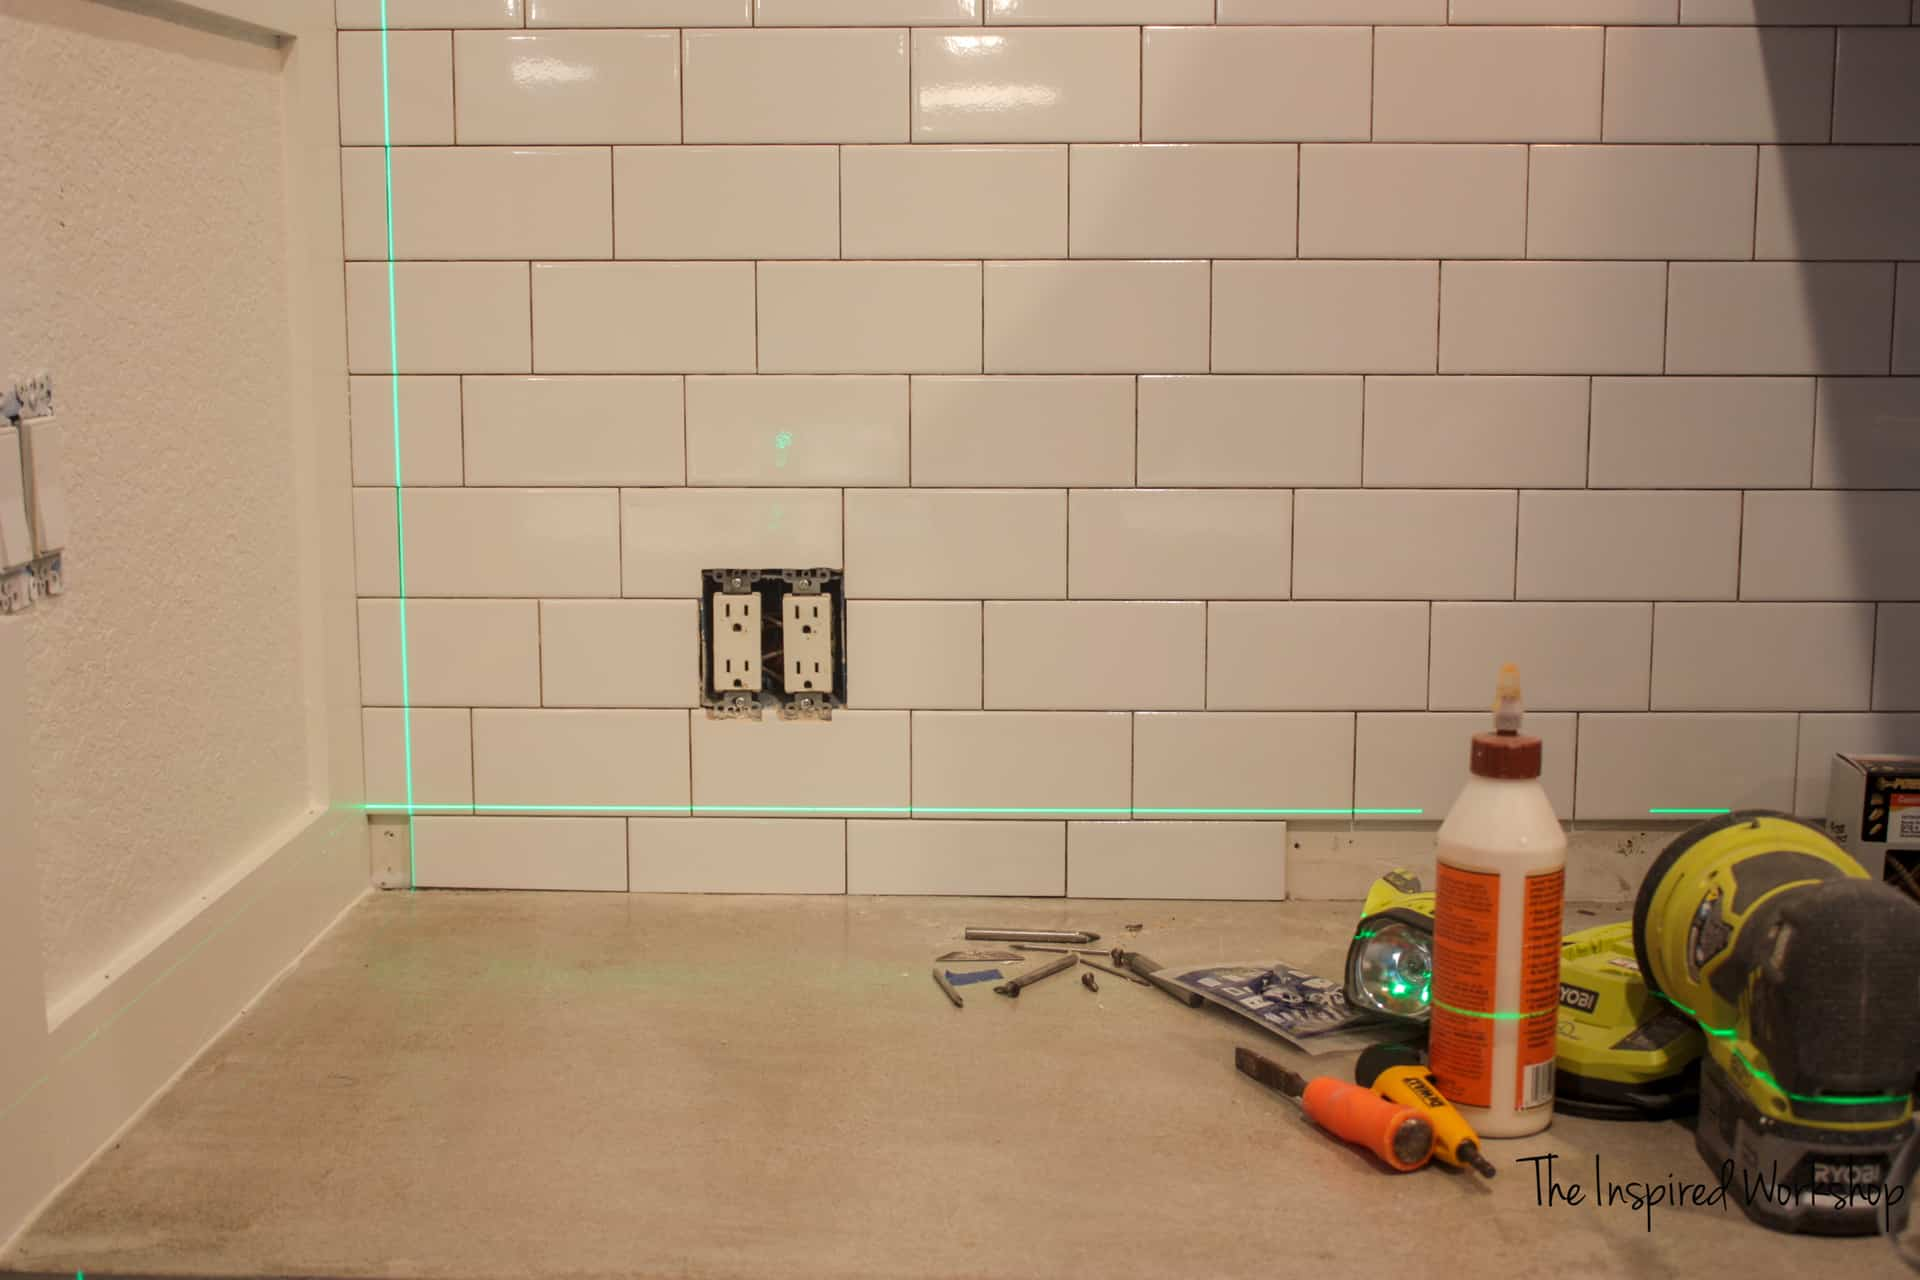 Using a laser level to get tiles straight